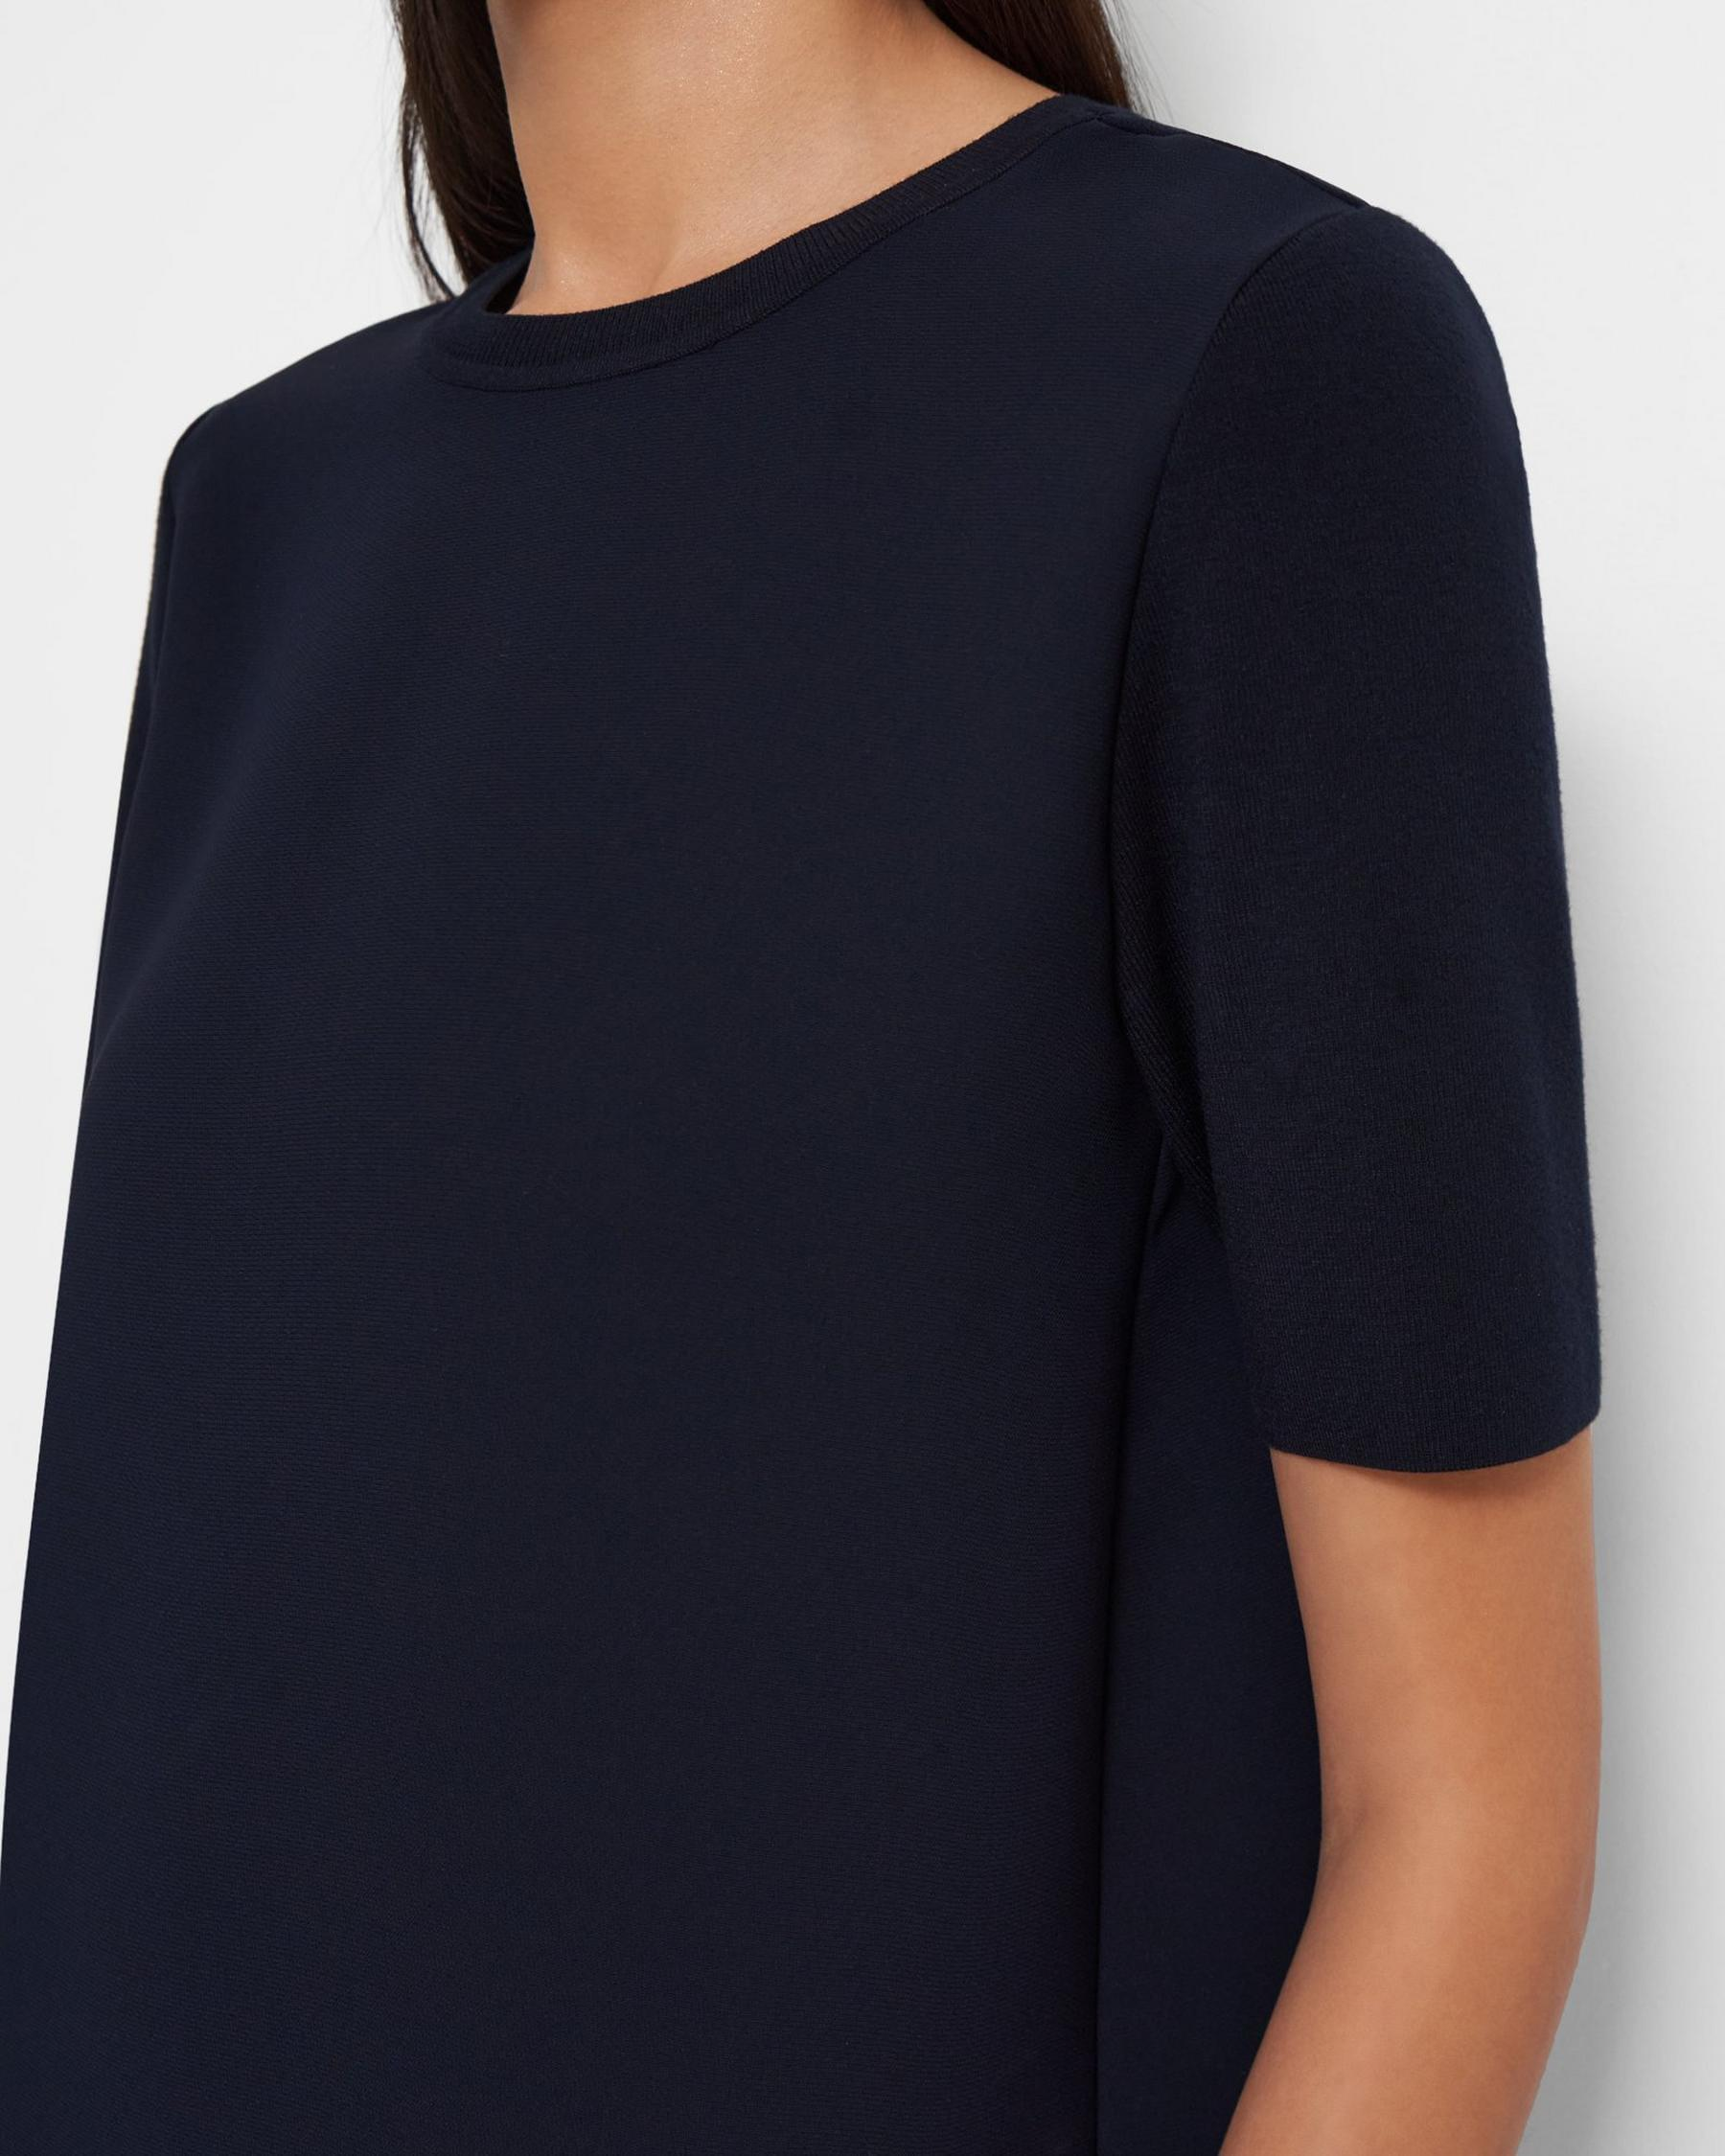 Short-Sleeve Top in Ribbed Crepe 2